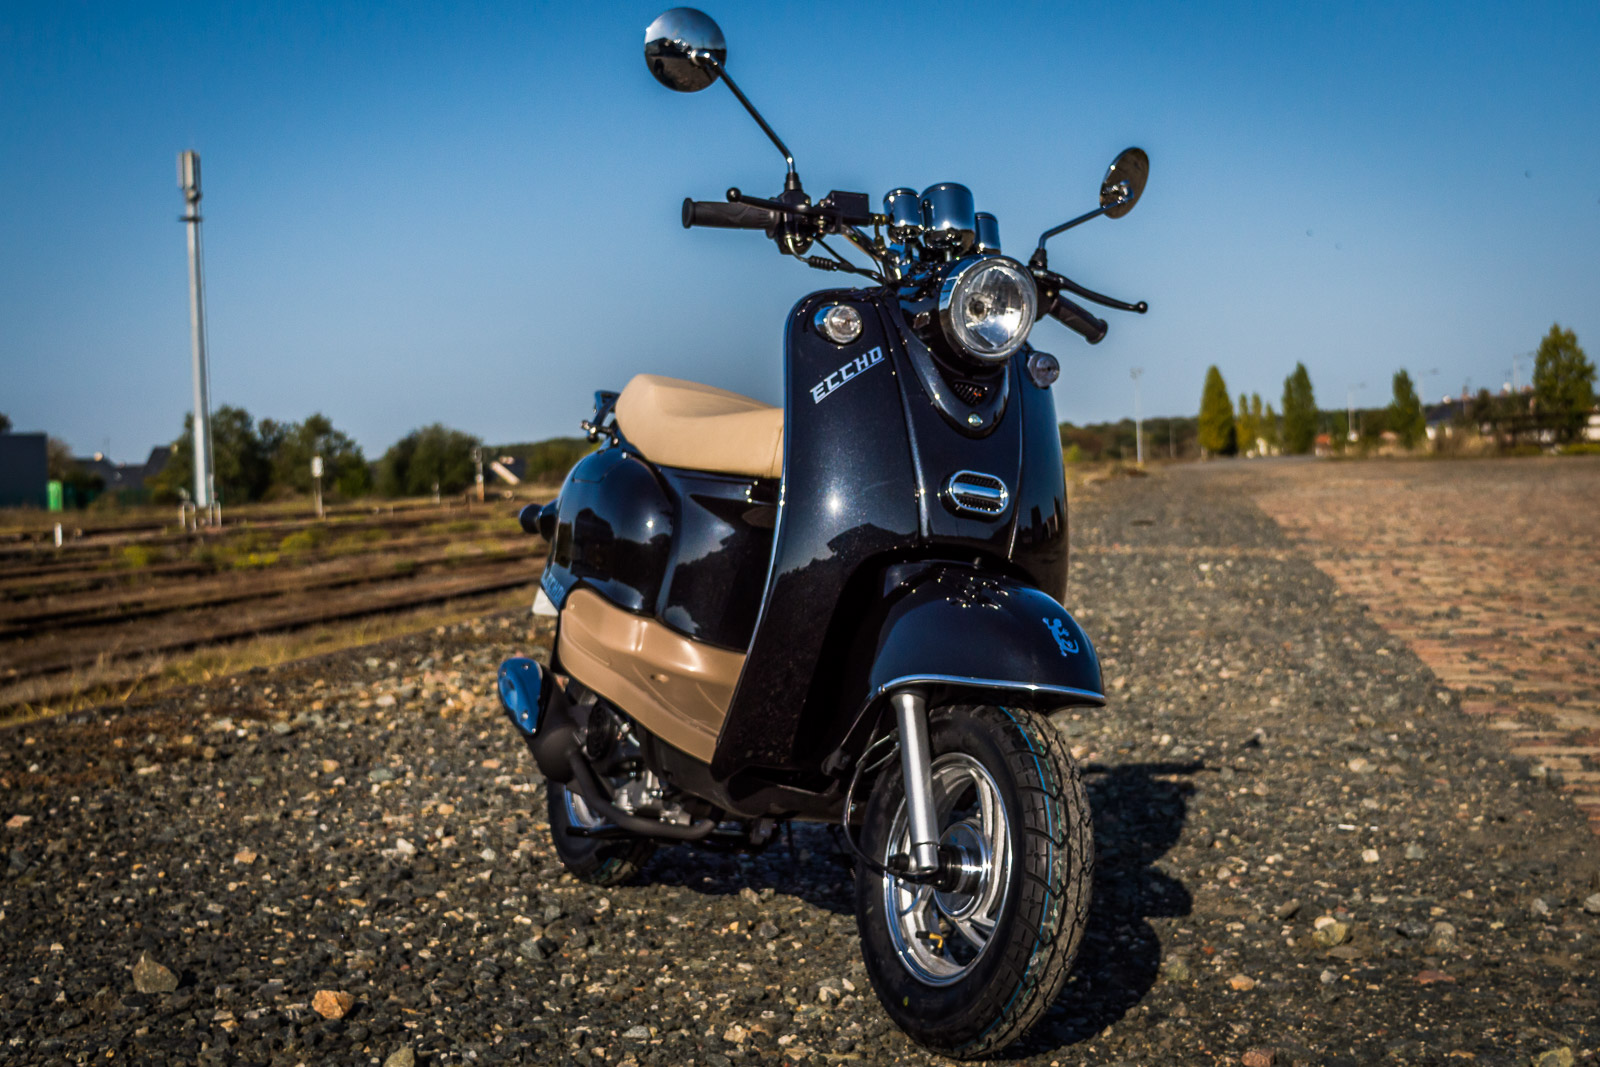 SCOOTER-50-ECCHO-RETRO-50-16